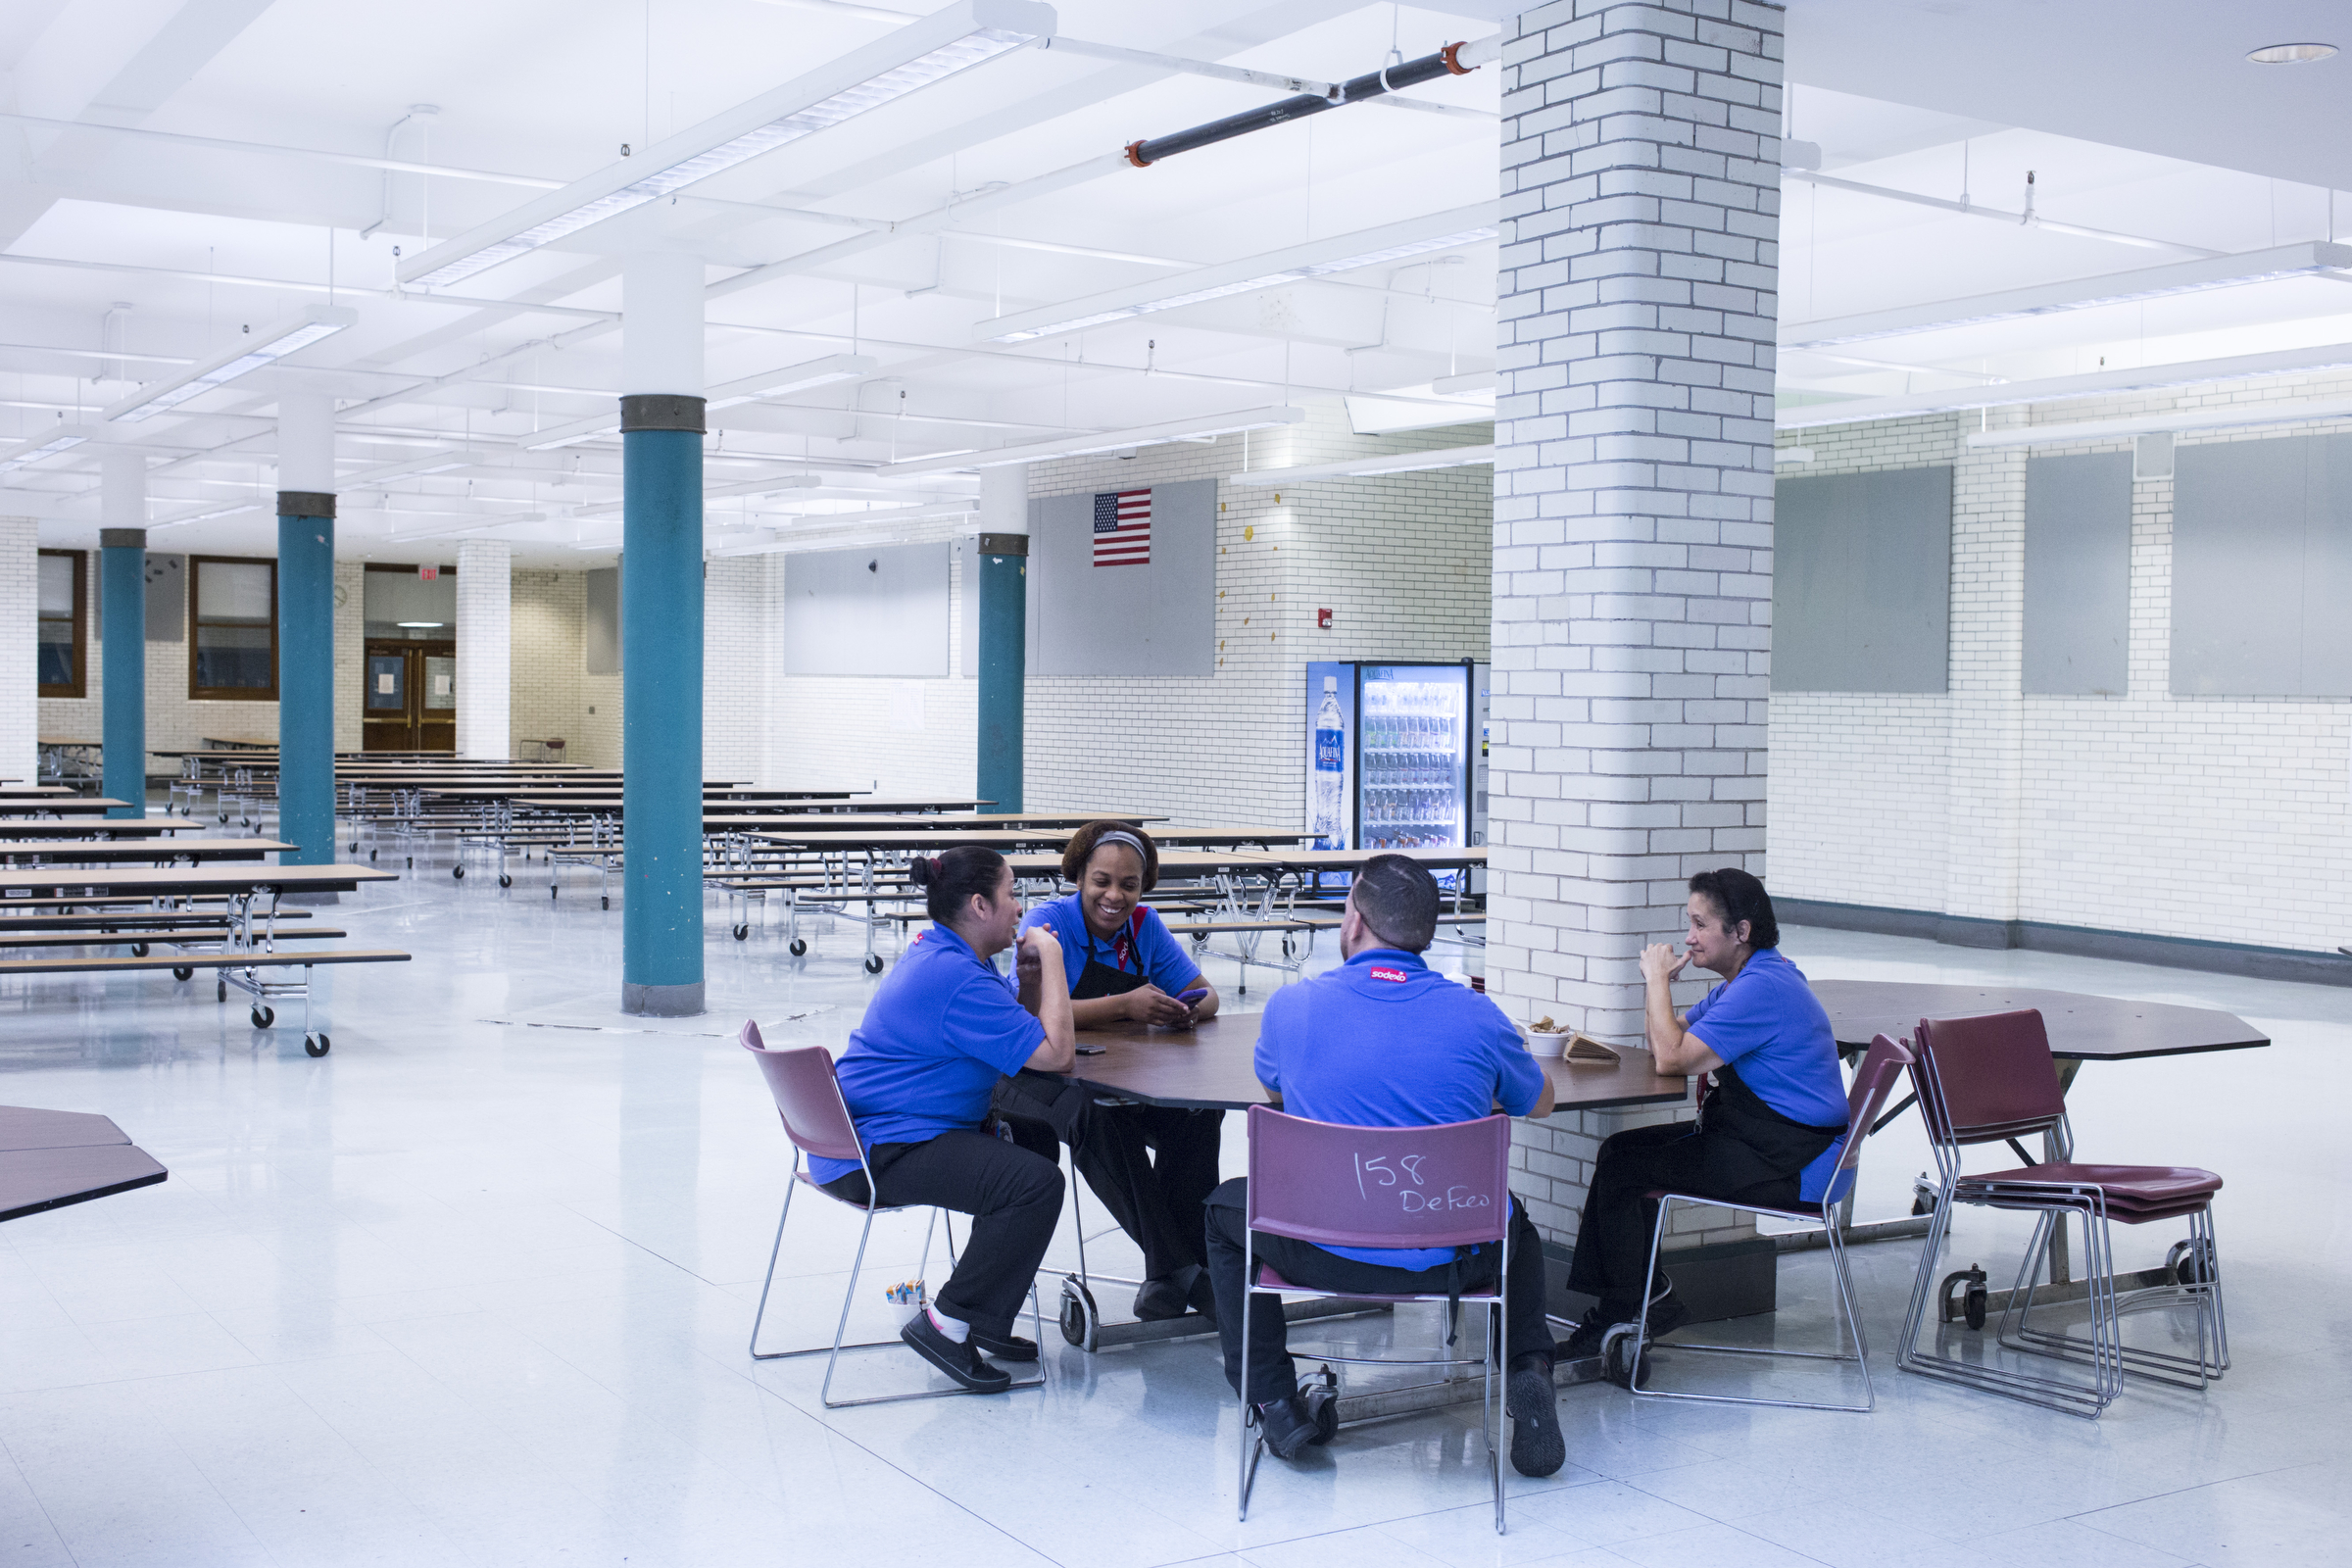 Selina Torres, center, talks with other cafeteria staff members during a break before lunch is served at the High School of Commerce in Springfield, Mass., on Monday, September, 11, 2017.